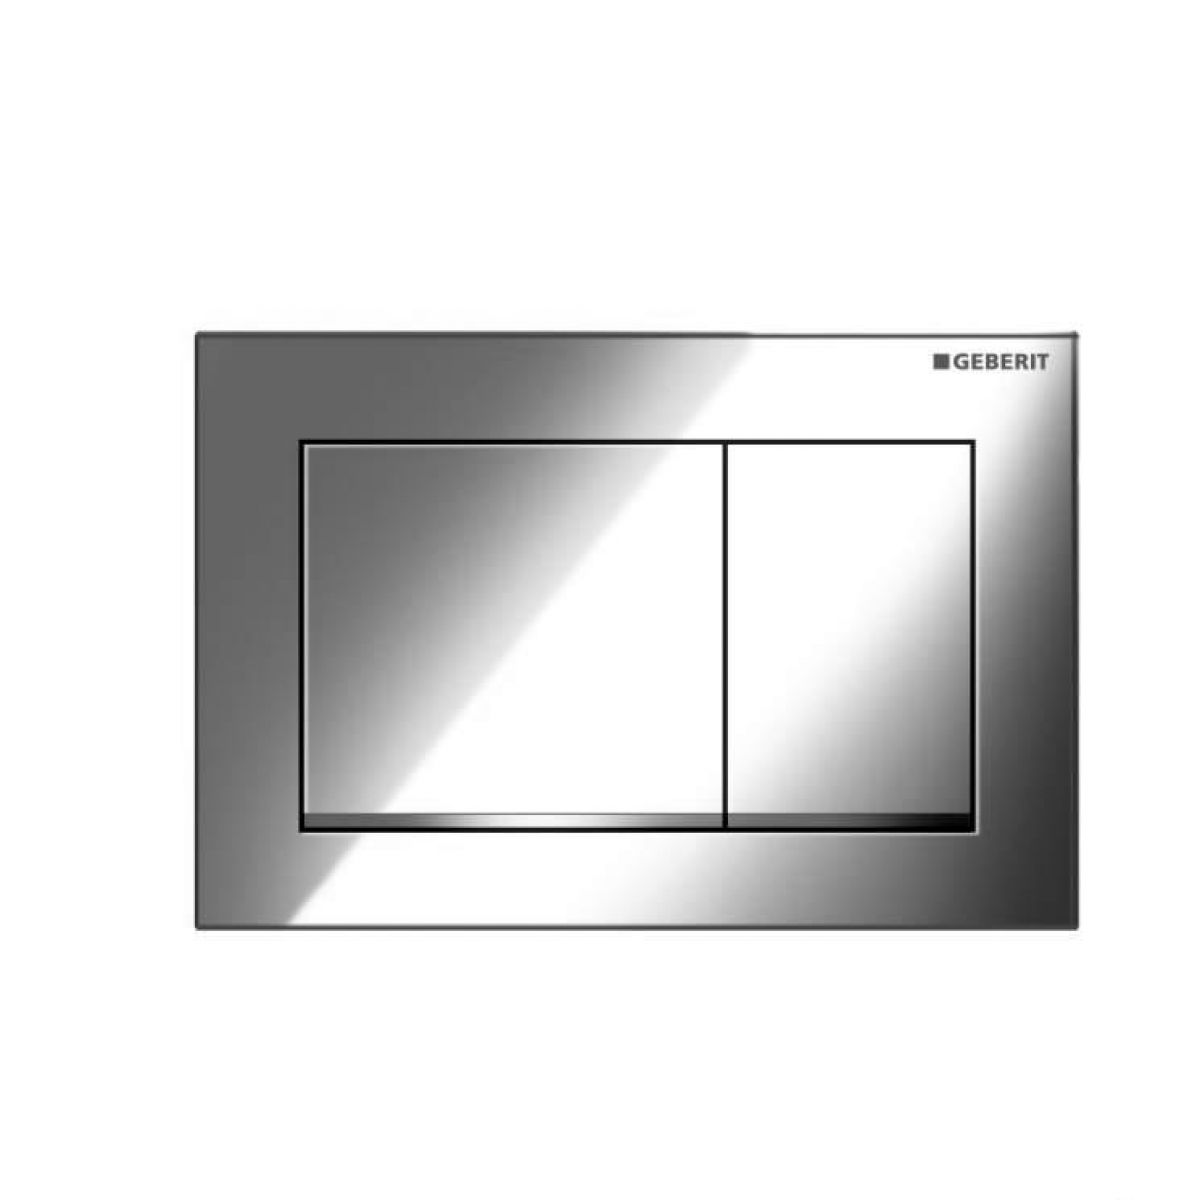 Geberit sigma30 dual flush plate uk bathrooms for Geberit flush